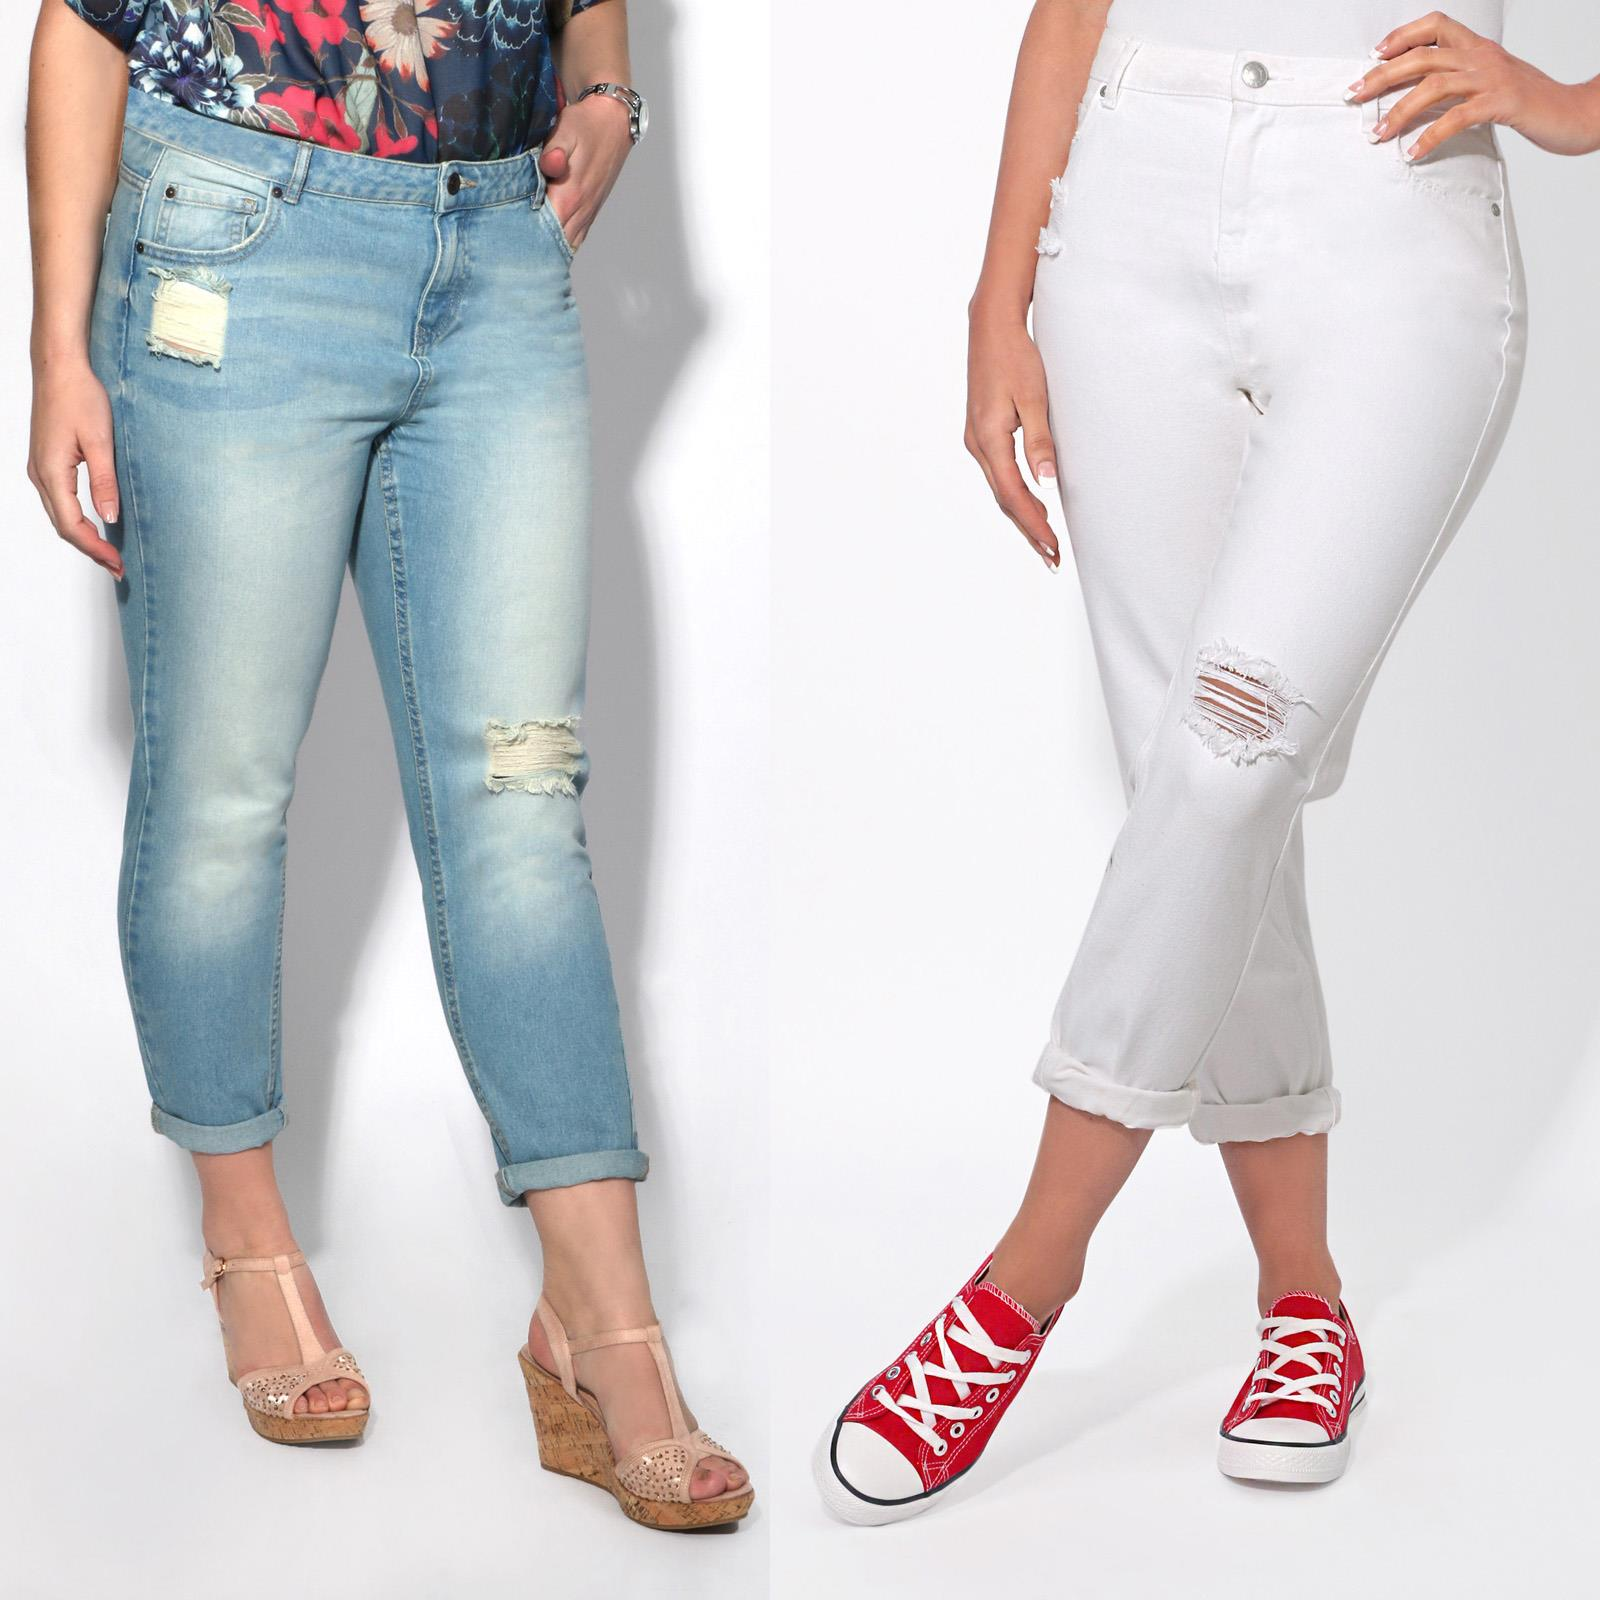 d2632a554e8 Women Ladies Ripped Cropped High Waisted Boyfriend Mom Jeans Distressed  Denim